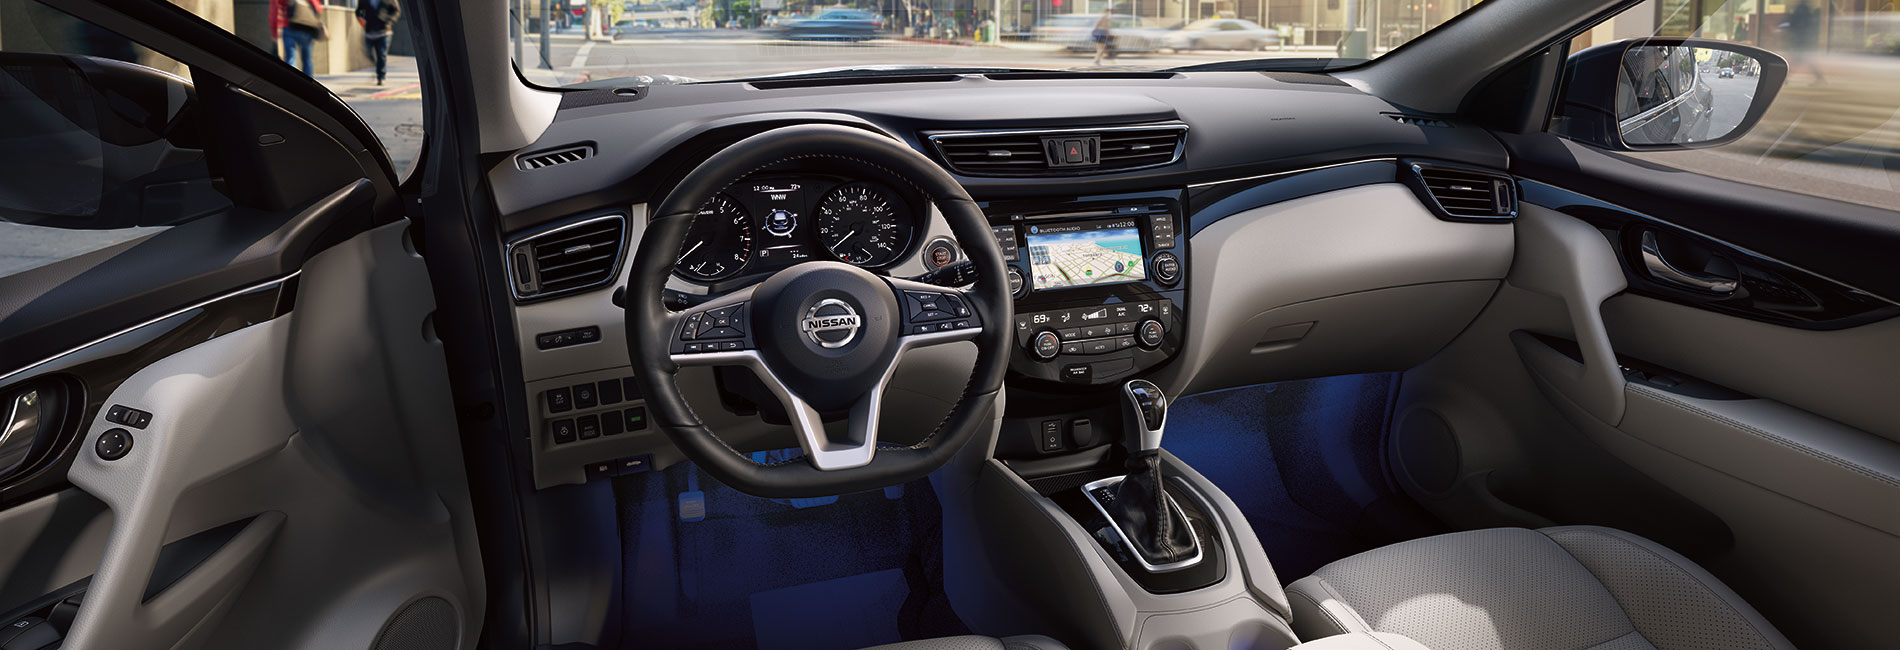 Nissan Rogue Interior Vehicle Features